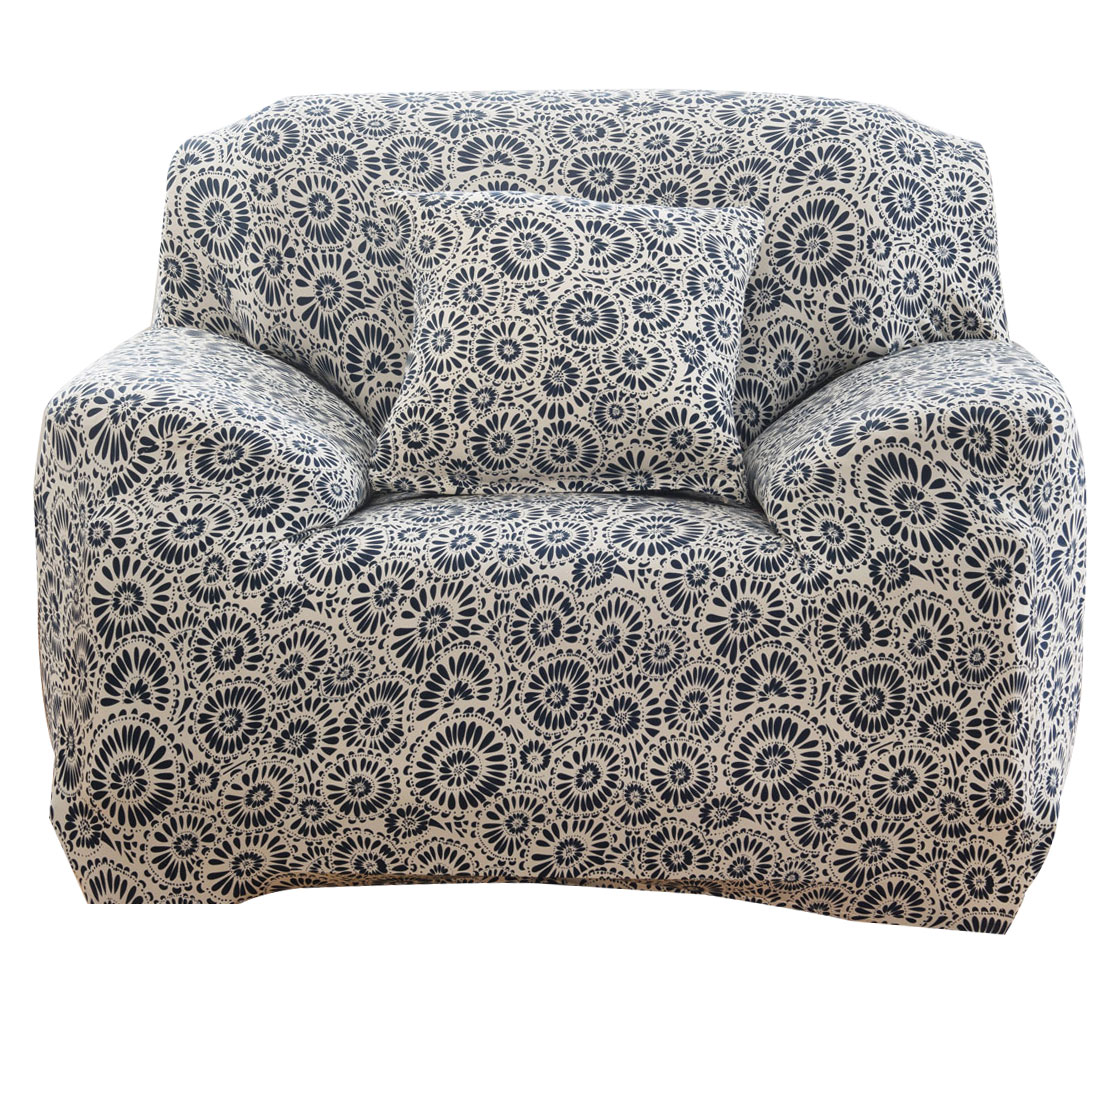 Household Polyester Ring Pattern Elastic 1 Seat Sofa Chair Cover Slipcover Protector 35-55 Inch